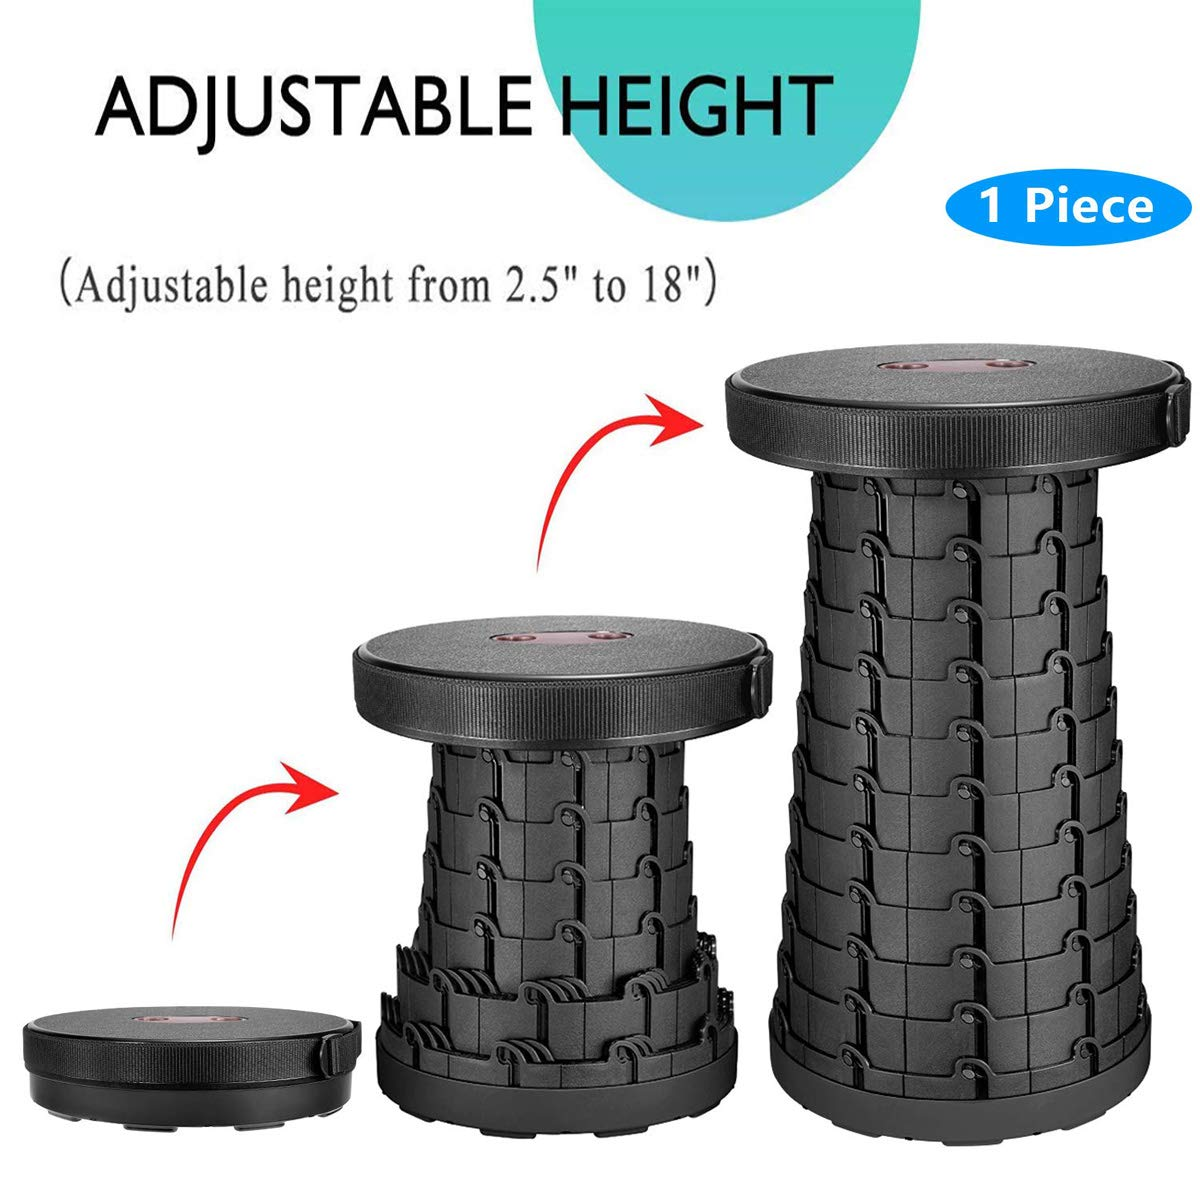 Portable Telescoping Stool Folding Camping Stool Foldable Chair Seat for Camping Fishing Hiking Traveling Mountain Beach Outdoor Activities Sturdy Retractable Plastic Stool Lightweight Collapsable Stool